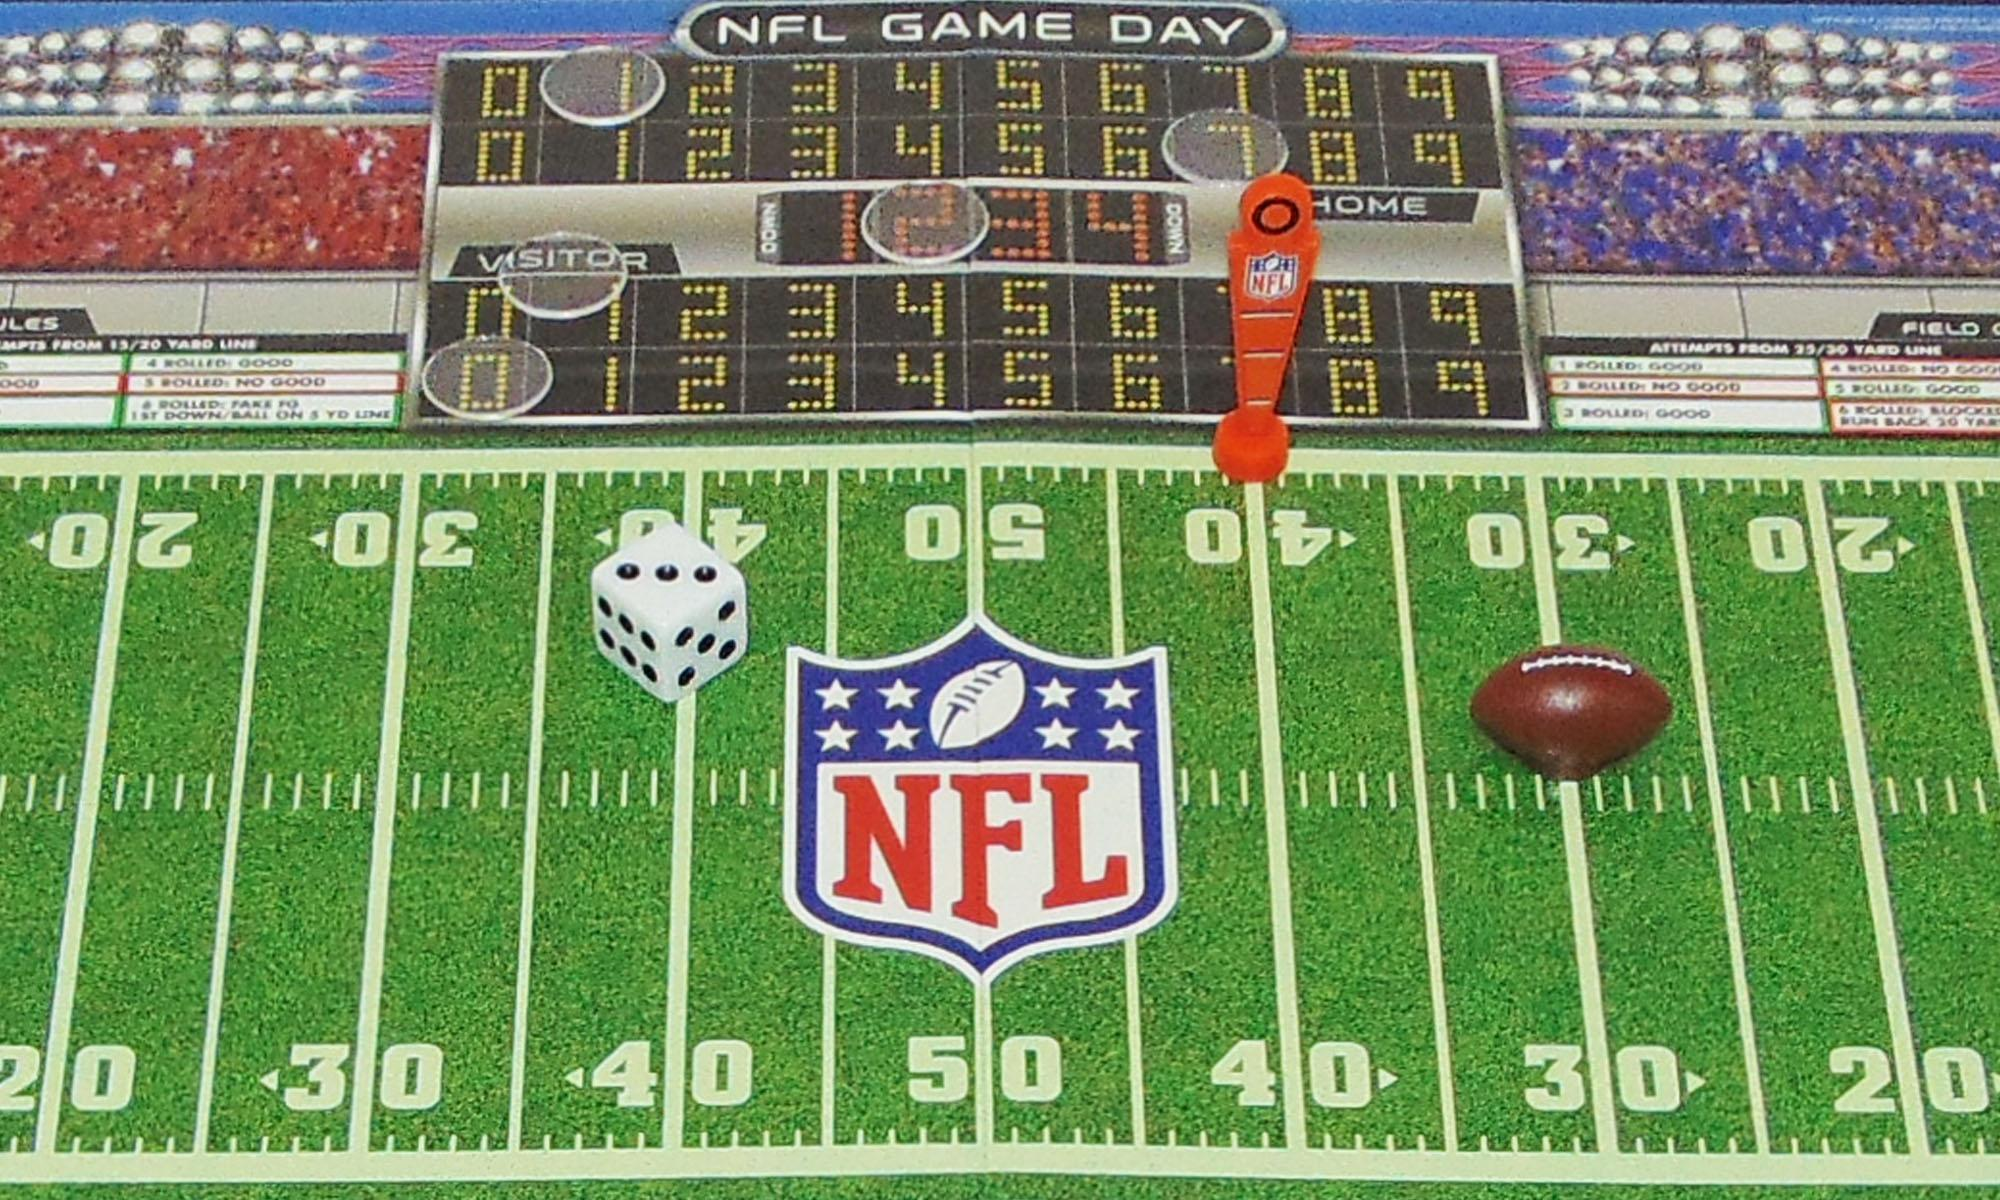 nfl sport games tonights nfl football game